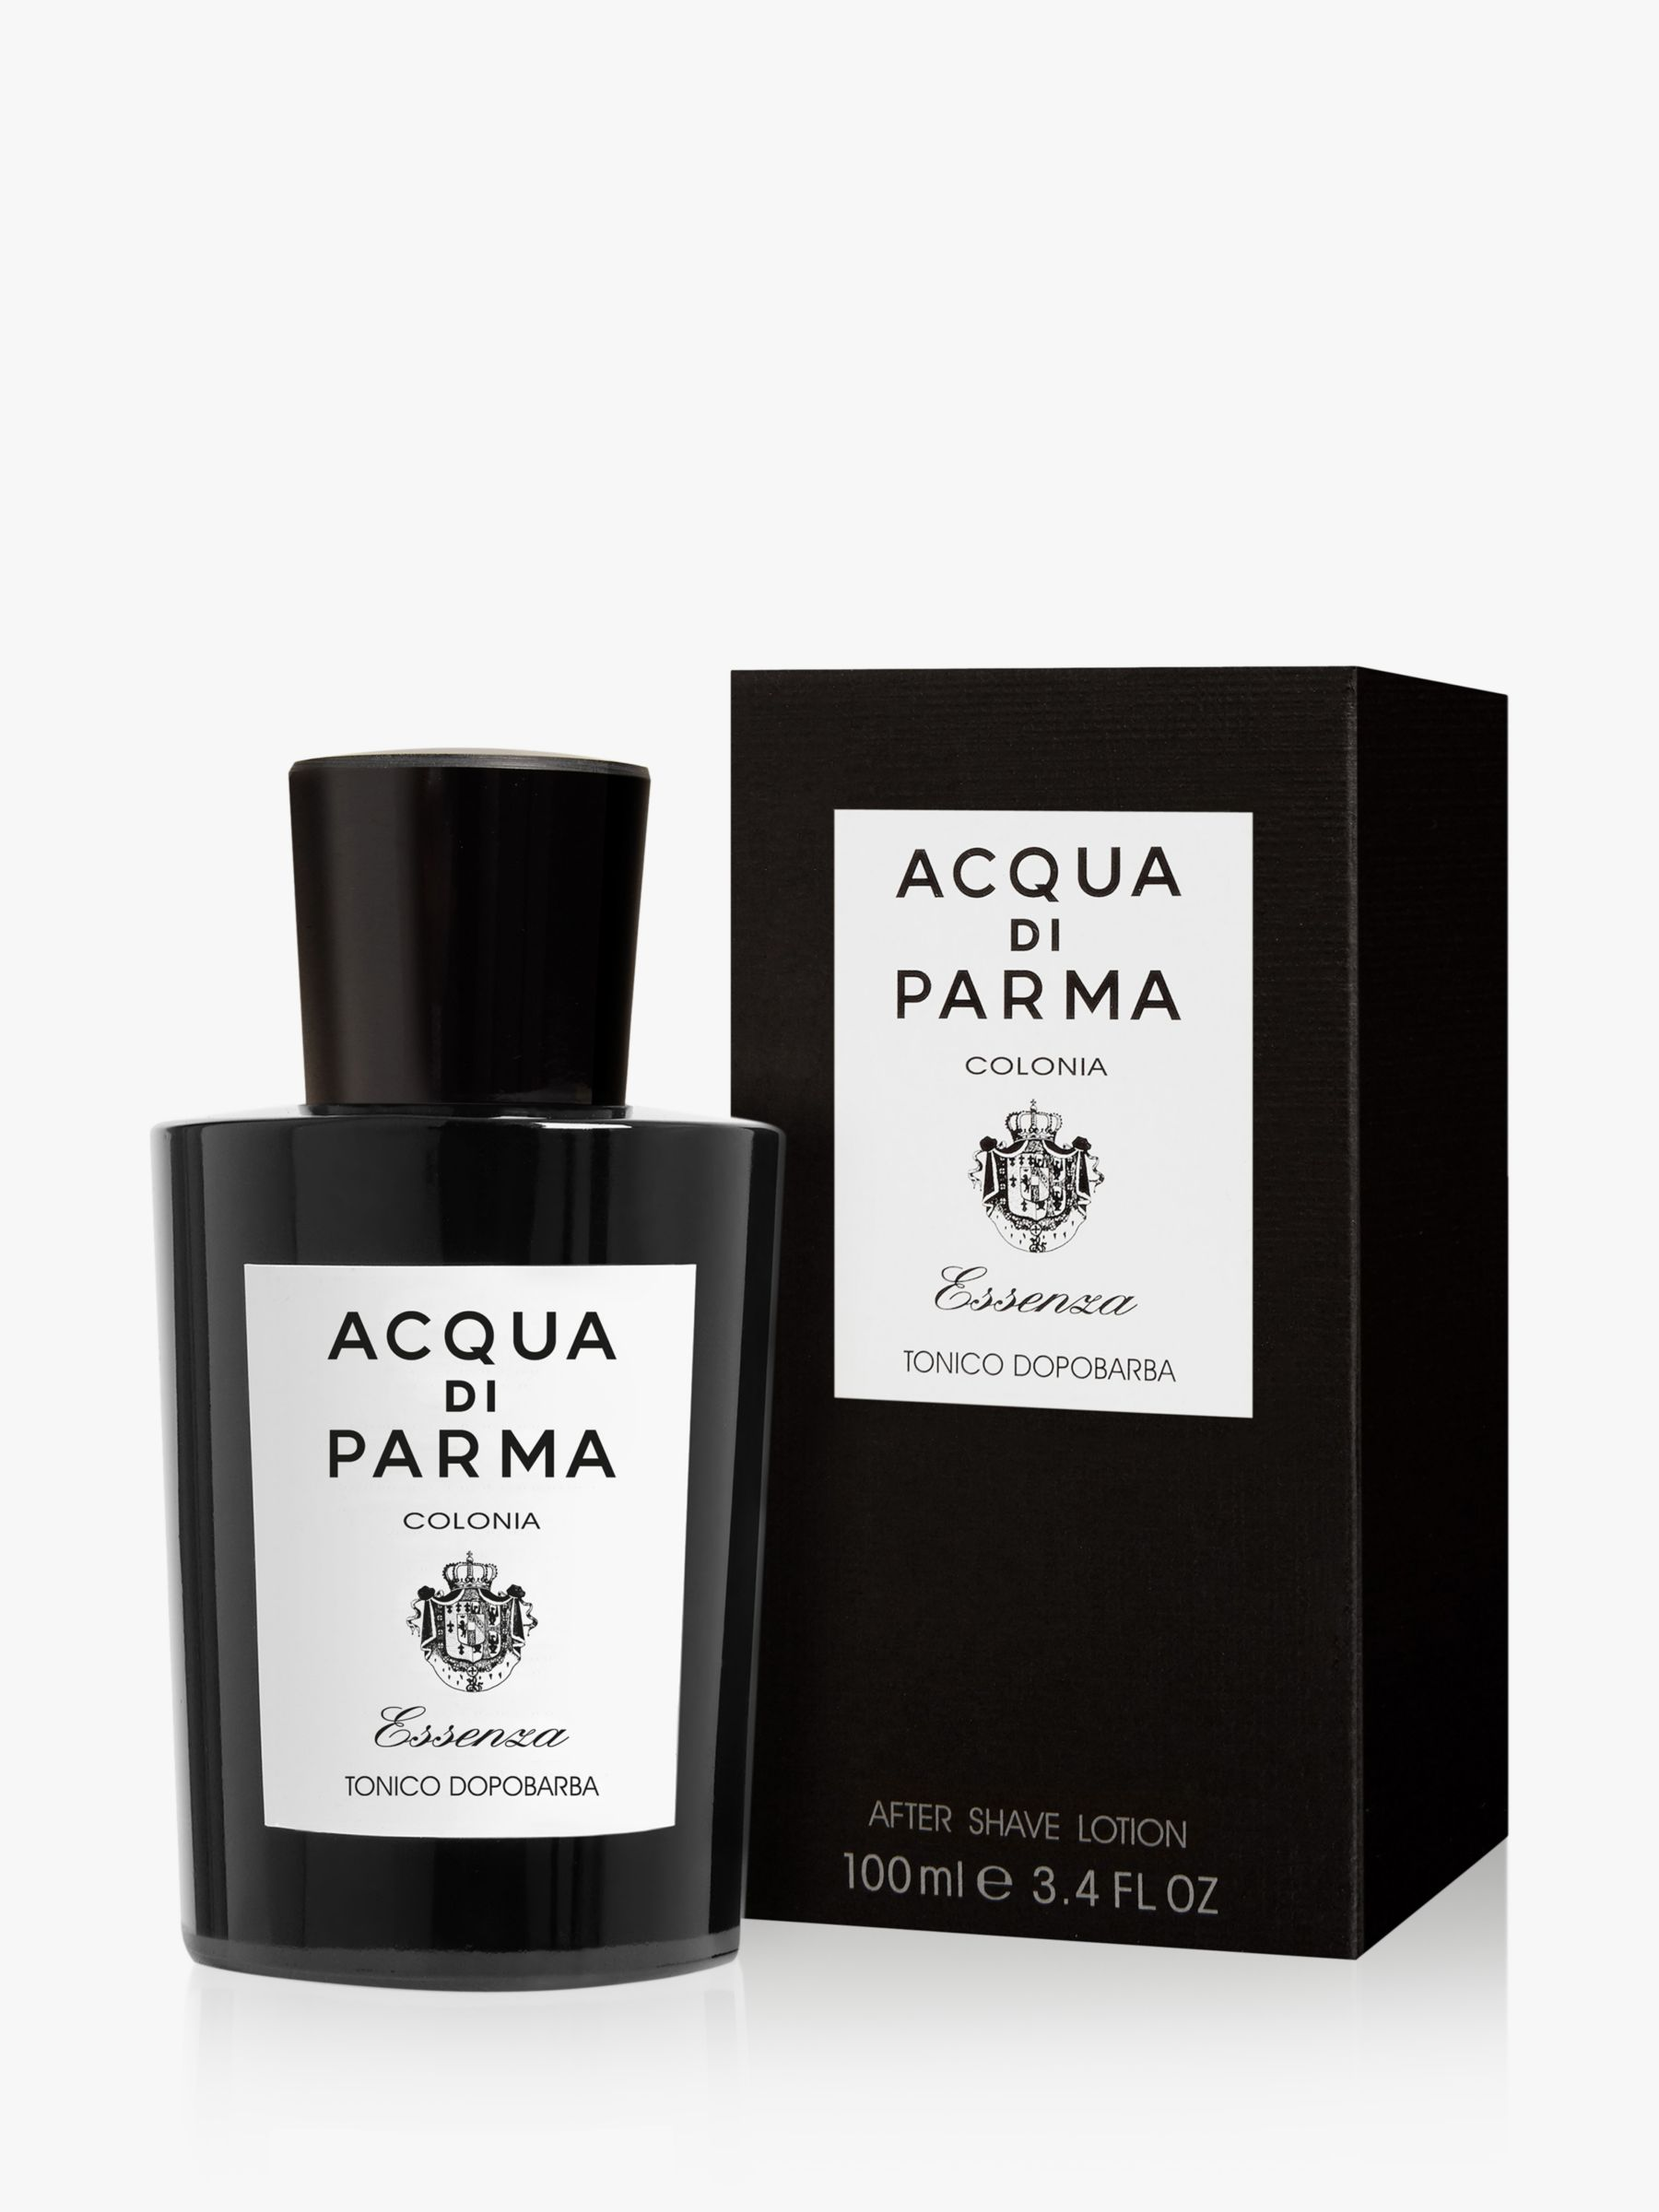 acqua aftershave